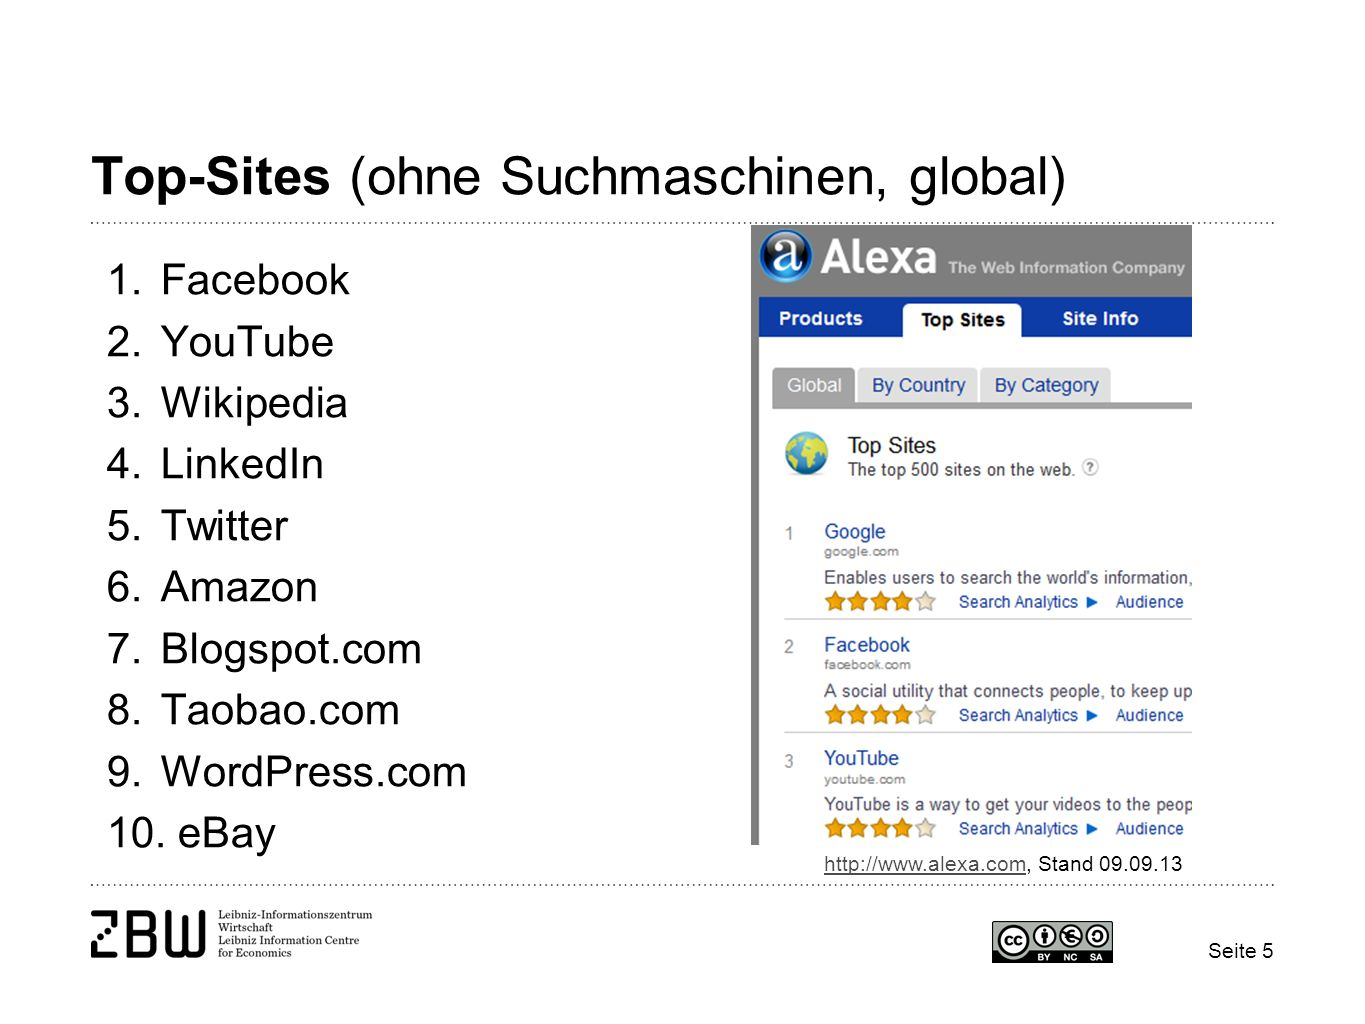 Seite 5 Top-Sites (ohne Suchmaschinen, global) 1.Facebook 2.YouTube 3.Wikipedia 4.LinkedIn 5.Twitter 6.Amazon 7.Blogspot.com 8.Taobao.com 9.WordPress.com 10.